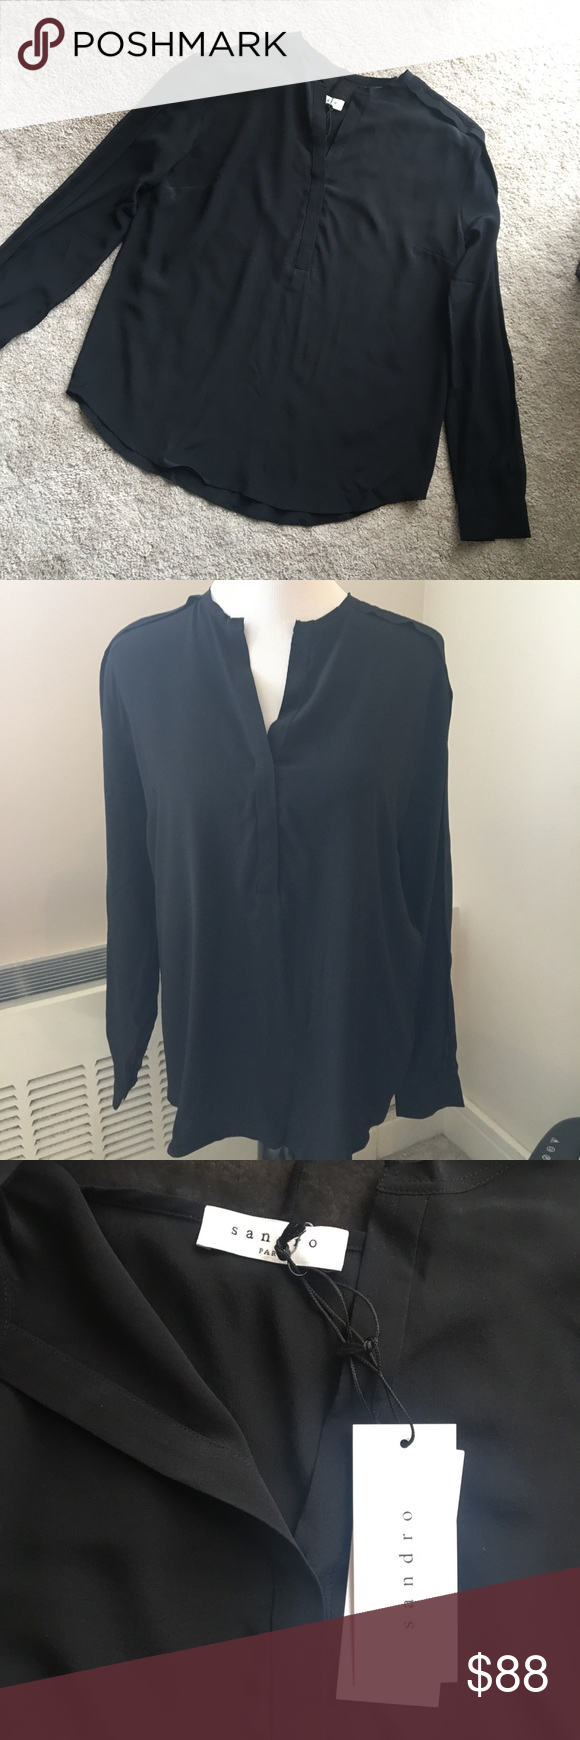 241e1145bb4dfd Sandro Paris Black Silk Blouse New! Size 3 M A jet black silk Sandro Paris  blouse